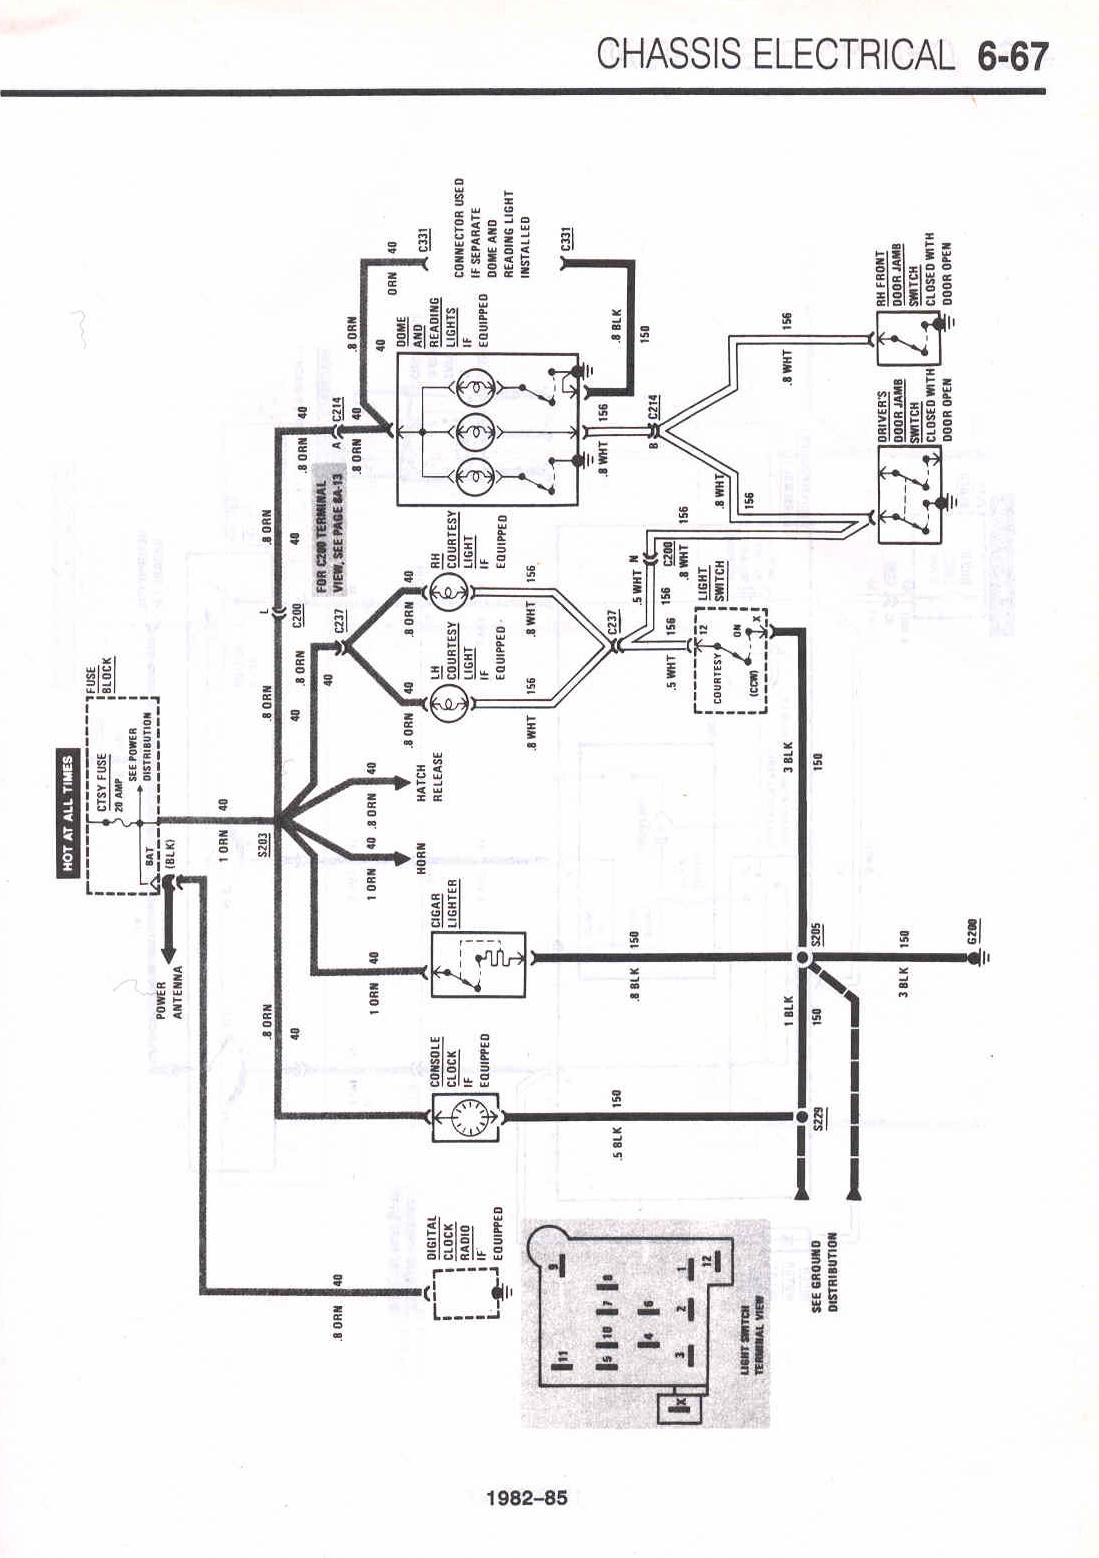 Dodge Ram 1500 Engine Parts Diagram additionally 508855 65 Ranchero Wiring Diagram moreover 88 F150 Steering Column Wiring Diagram in addition 1994 Camaro Radio Wiring Diagram moreover C6 Corvette Interior Fuse Box. on c4 corvette dash wiring diagram